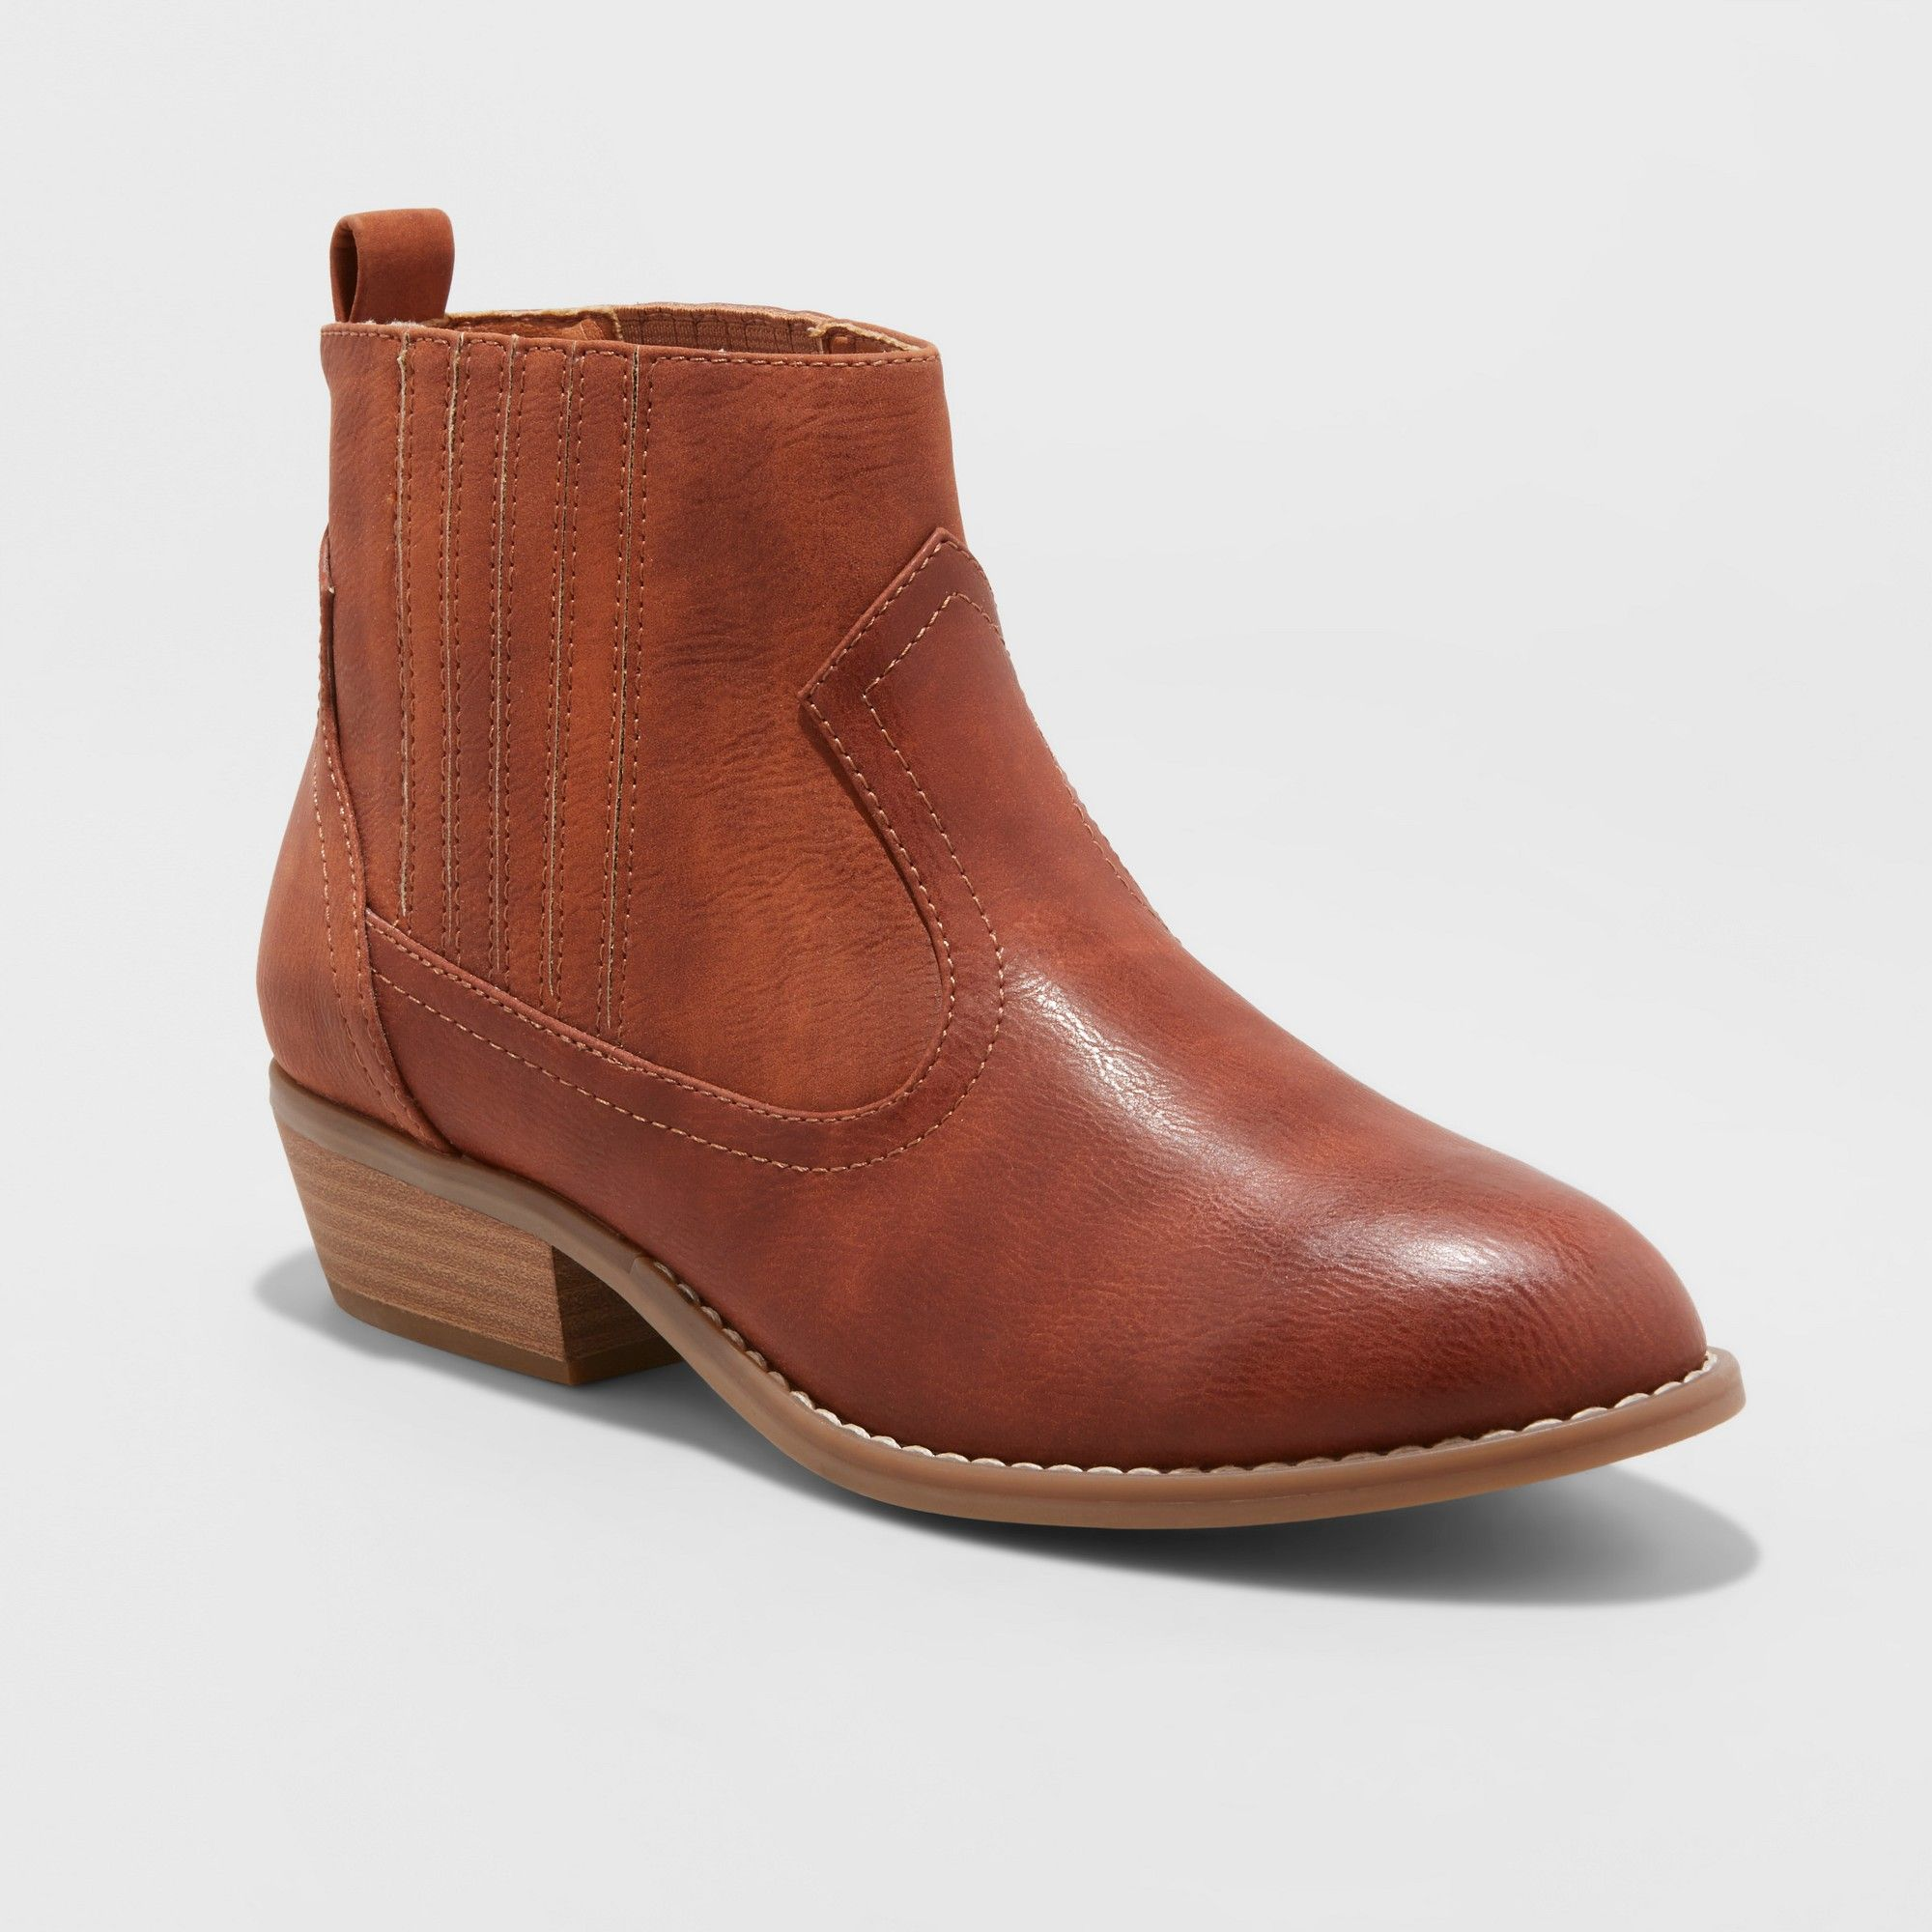 f83a206d8 Girls' Asha Western Ankle Boots - Cat & Jack Cognac 4, Brown in 2019    Products   Boots, Girls shoes, Chelsea boots